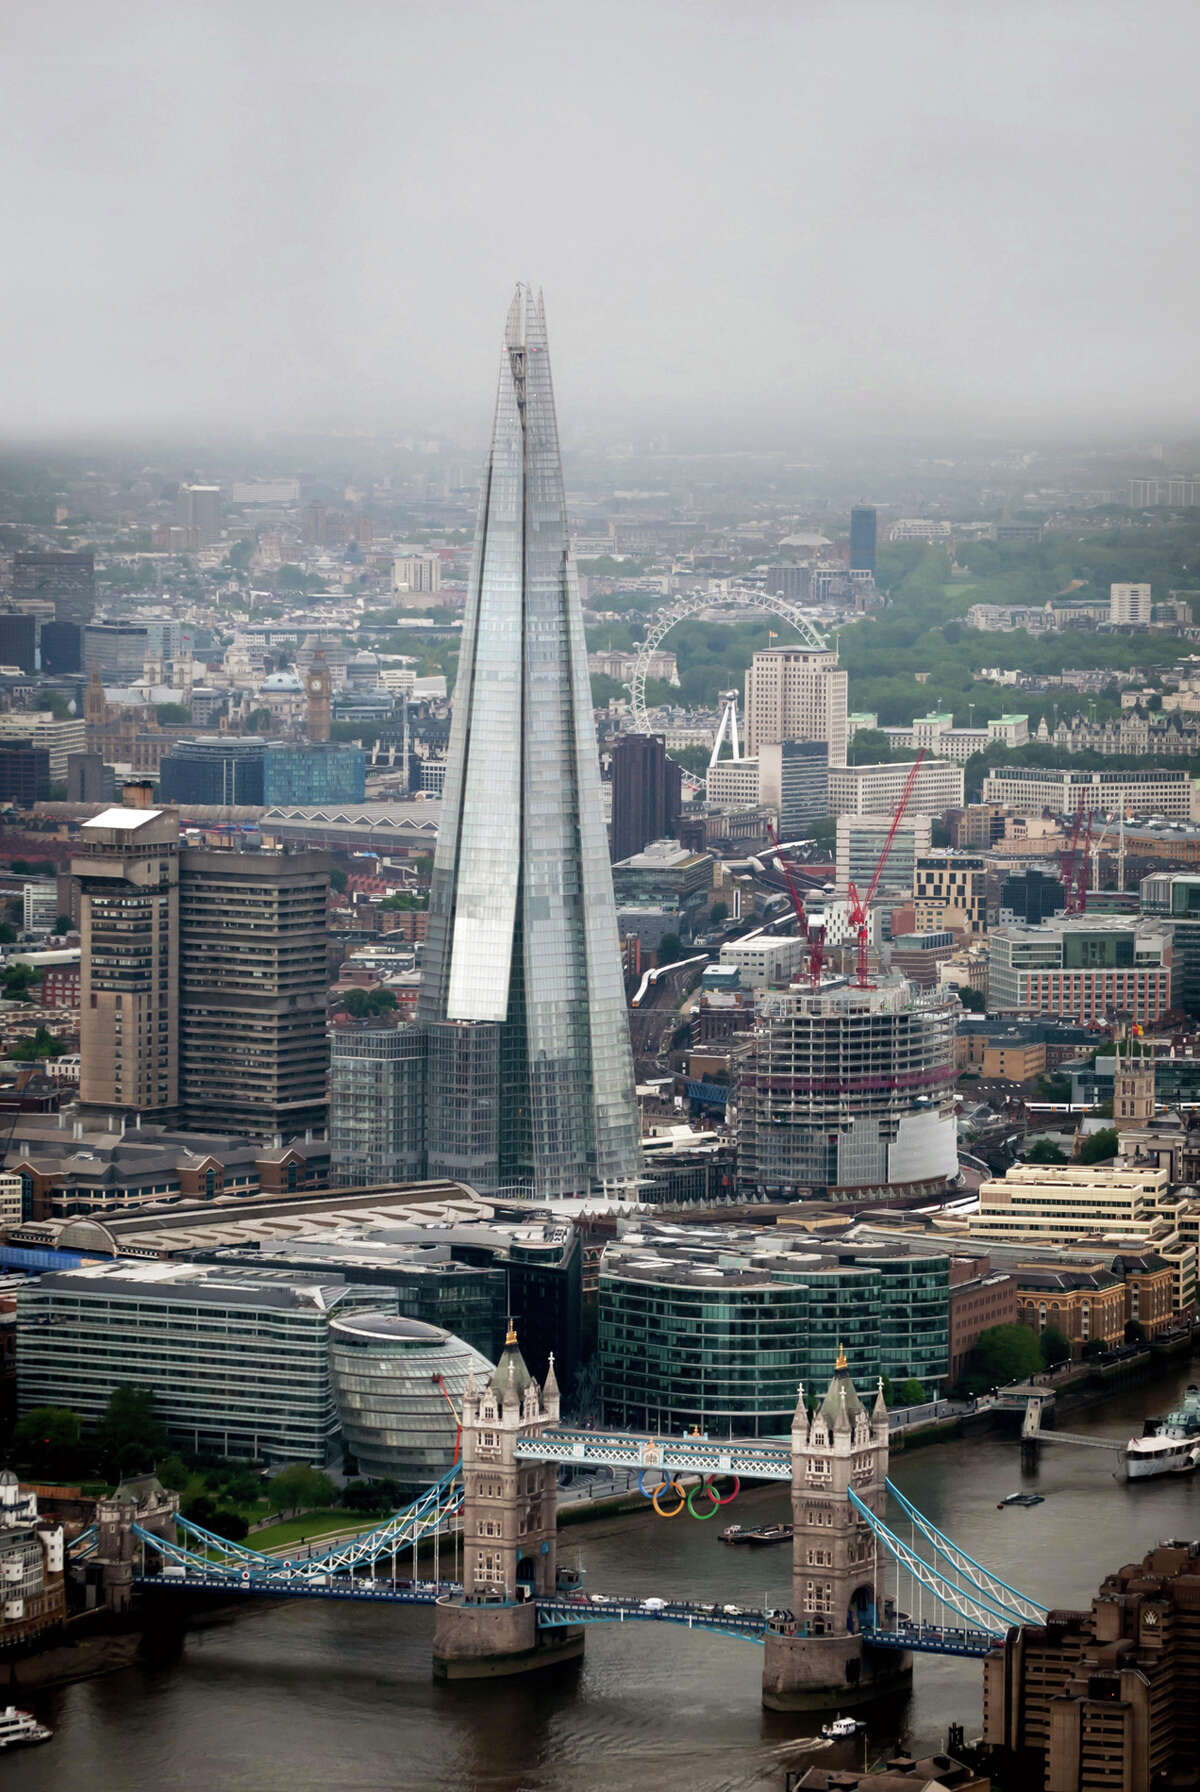 This aerial photo made available by Newscast shows The Shard, center, a newly-constructed high-rise building in London, that is western Europe's tallest, ahead of the official opening on Thursday. The Shard is 309.6 meters tall (1,016 feet) and features high quality offices, a 5-star hotel with more than 200 rooms and suites and three floors of restaurants. It will also feature exclusive super prime residential apartments and the top levels will consist of the capital's highest public viewing gallery offering 360-degree views of London. (AP Photo/Newscast, Ben Fitzpatrick)